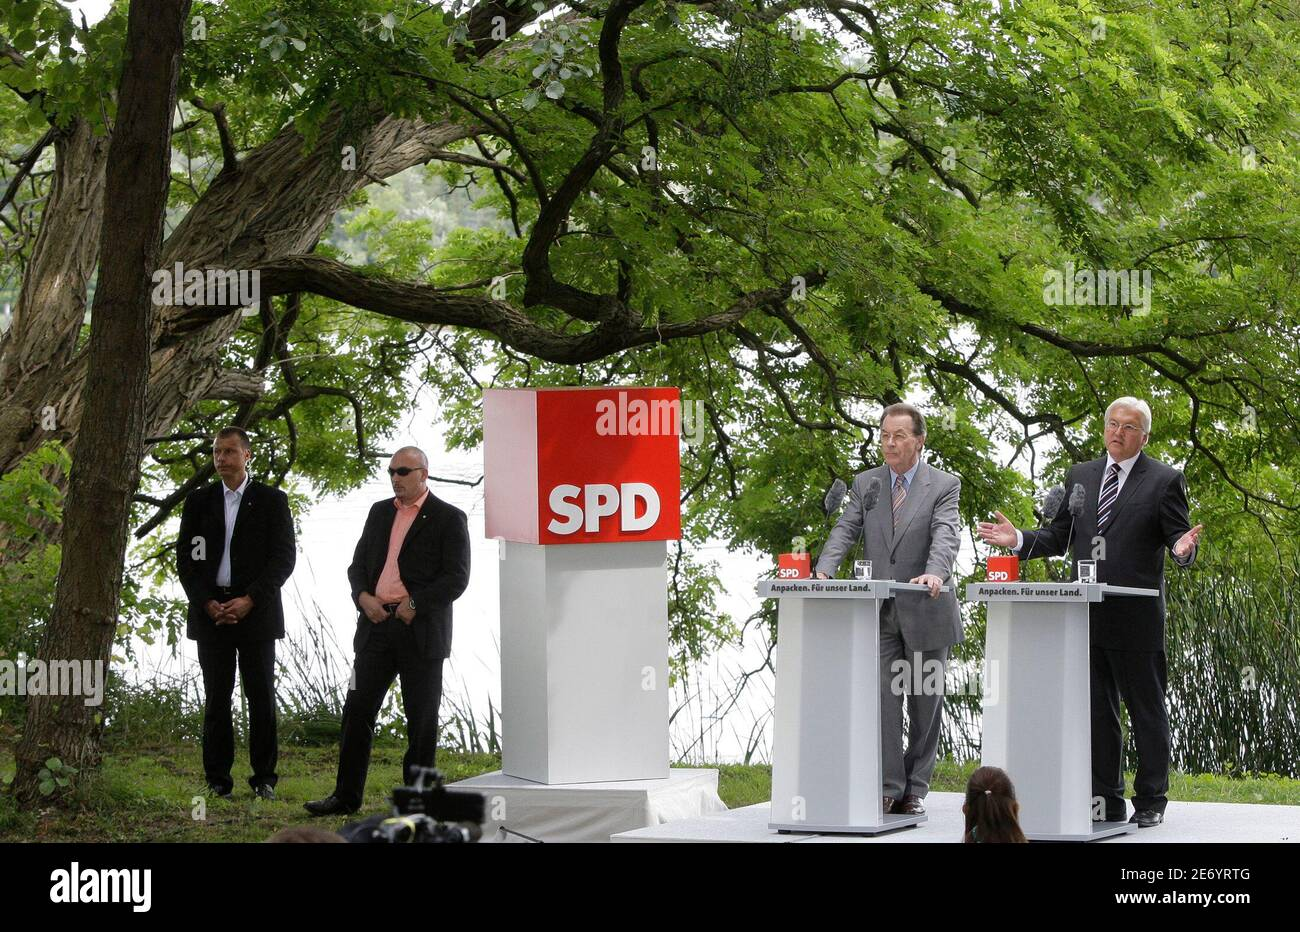 Frank-Walter Steinmeier (R) Germany's Social Democratic candidate for chancellor and SPD leader Franz Muentefering address the media in Potsdam, July 30, 2009.     REUTERS/Tobias Schwarz     (GERMANY POLITICS ELECTIONS) Stock Photo